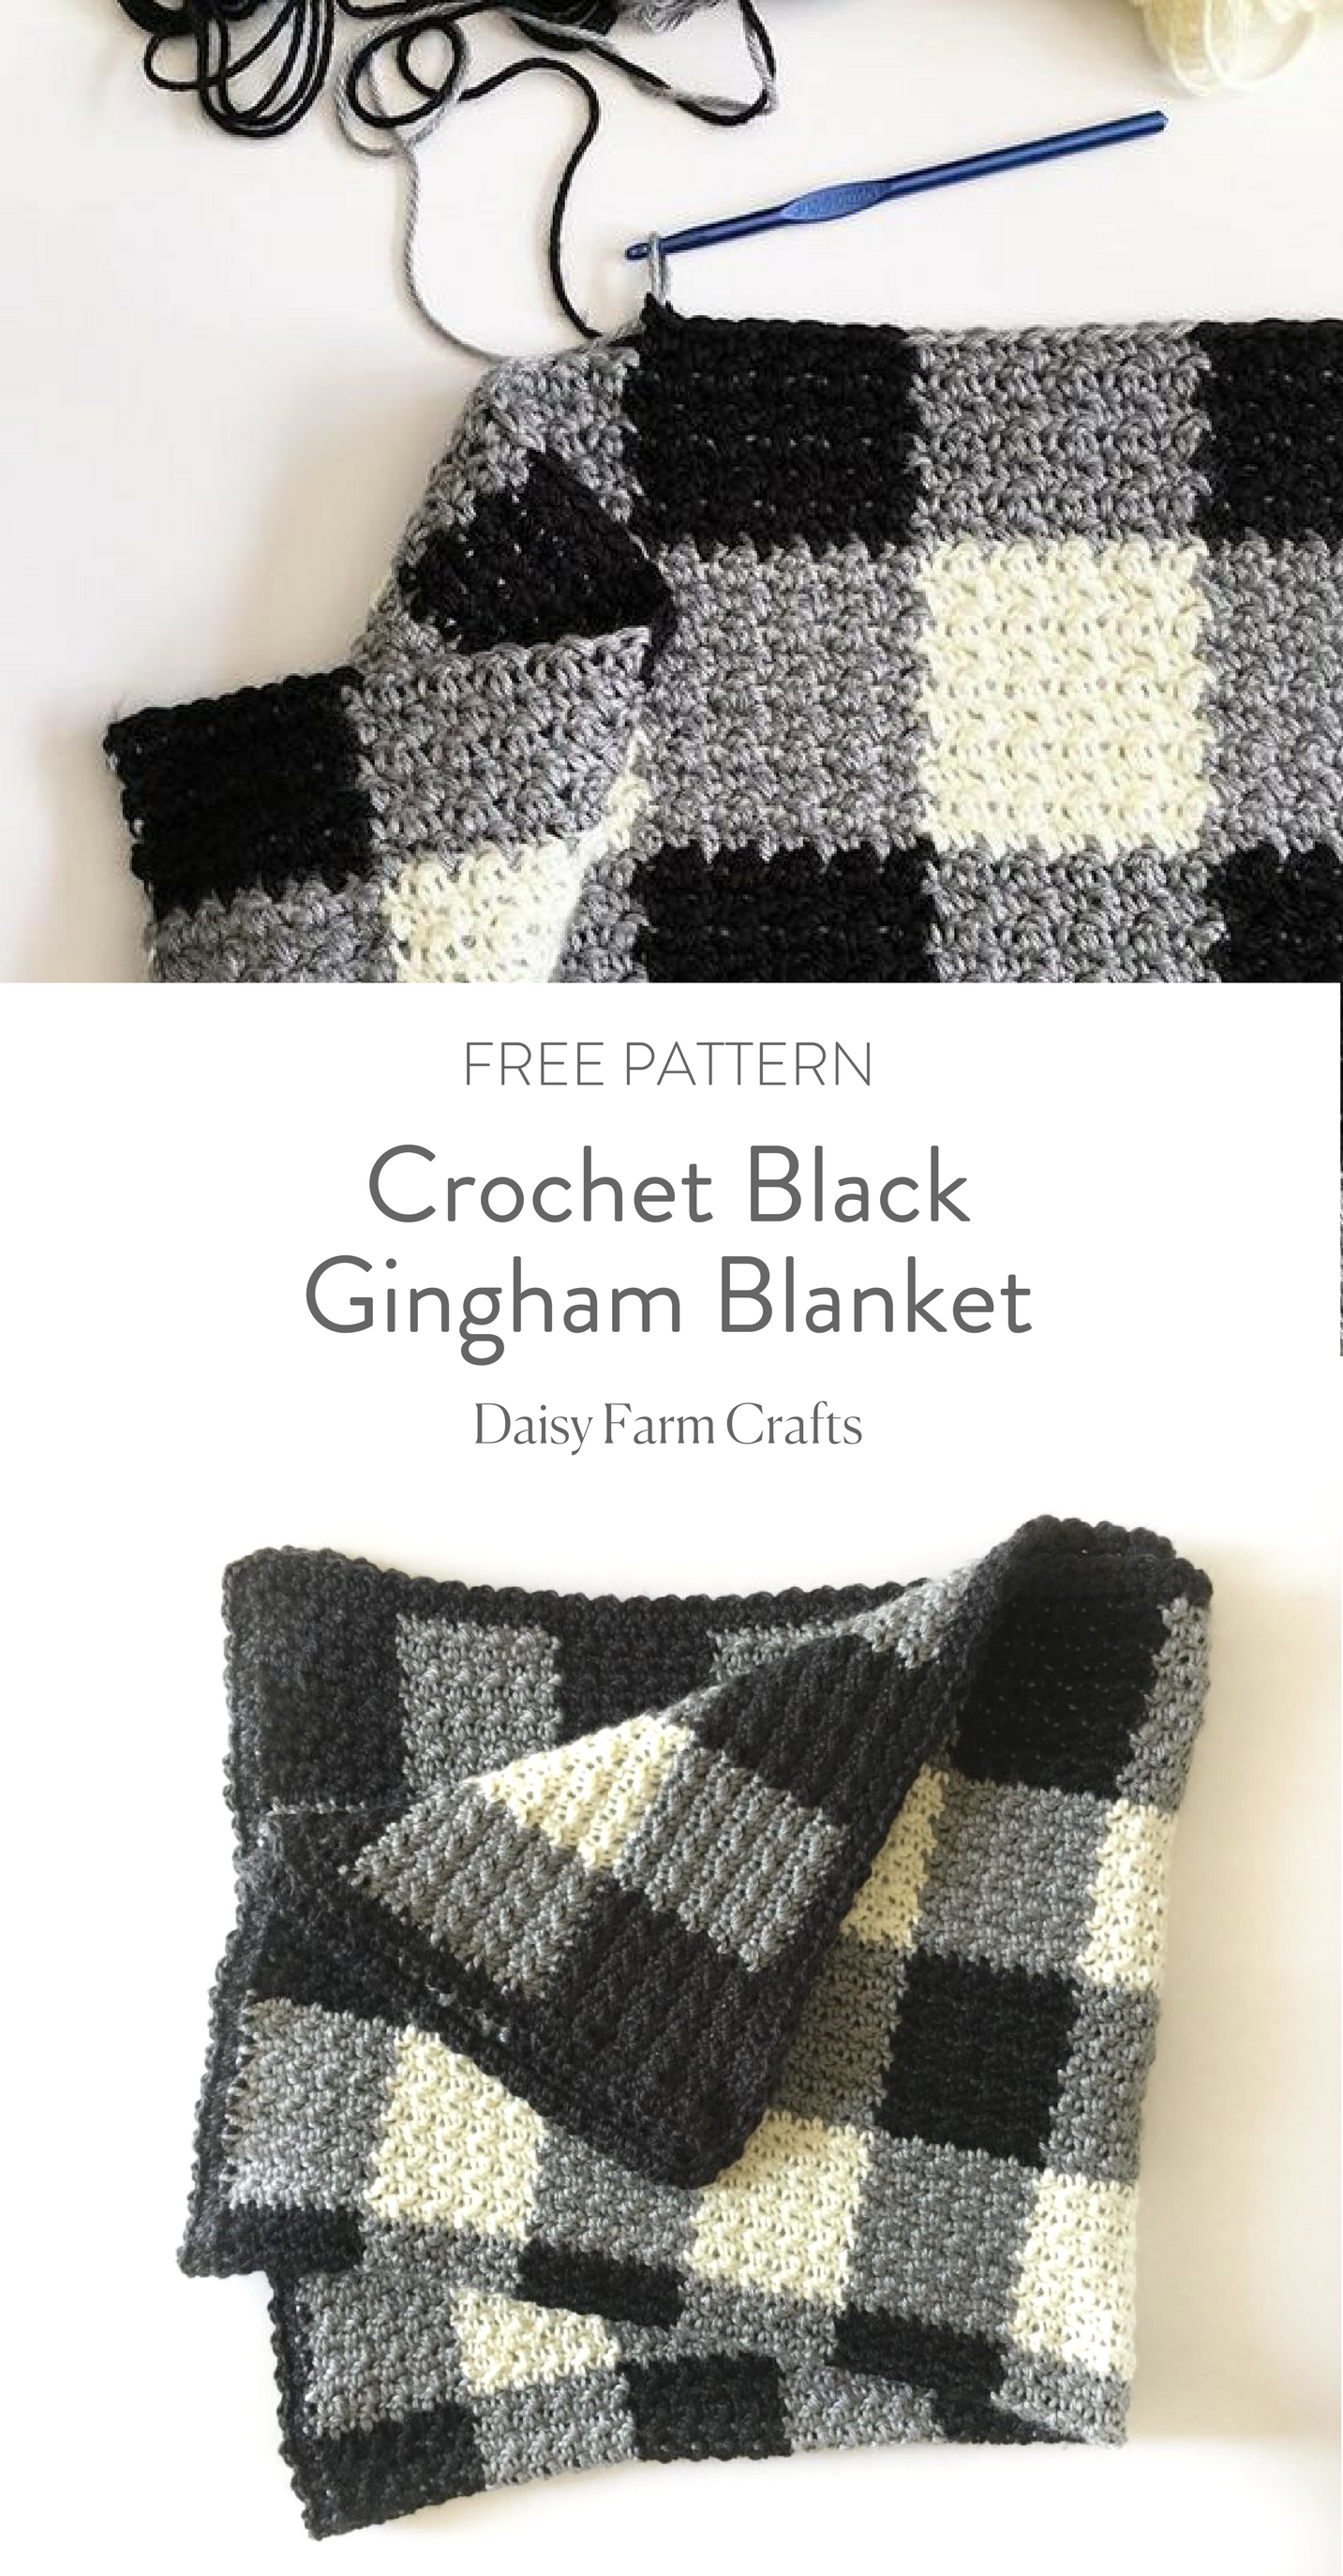 Crochet Black Gingham Blanket - Free Pattern | Afghan Patterns ...